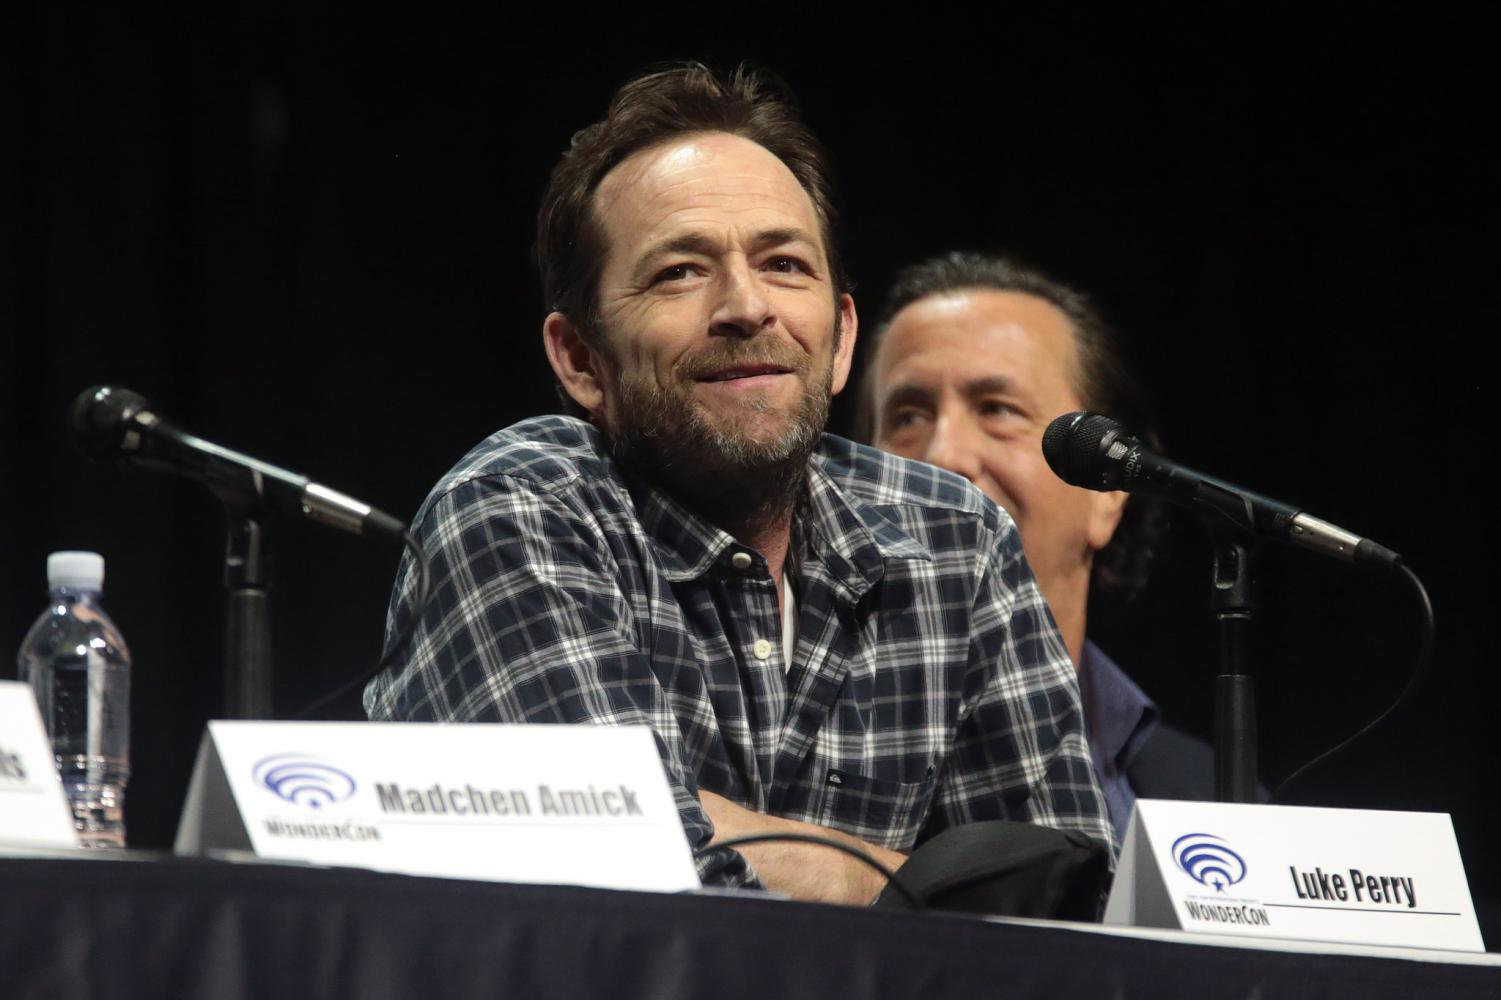 Luke Perry speaks March 31, 2018 for